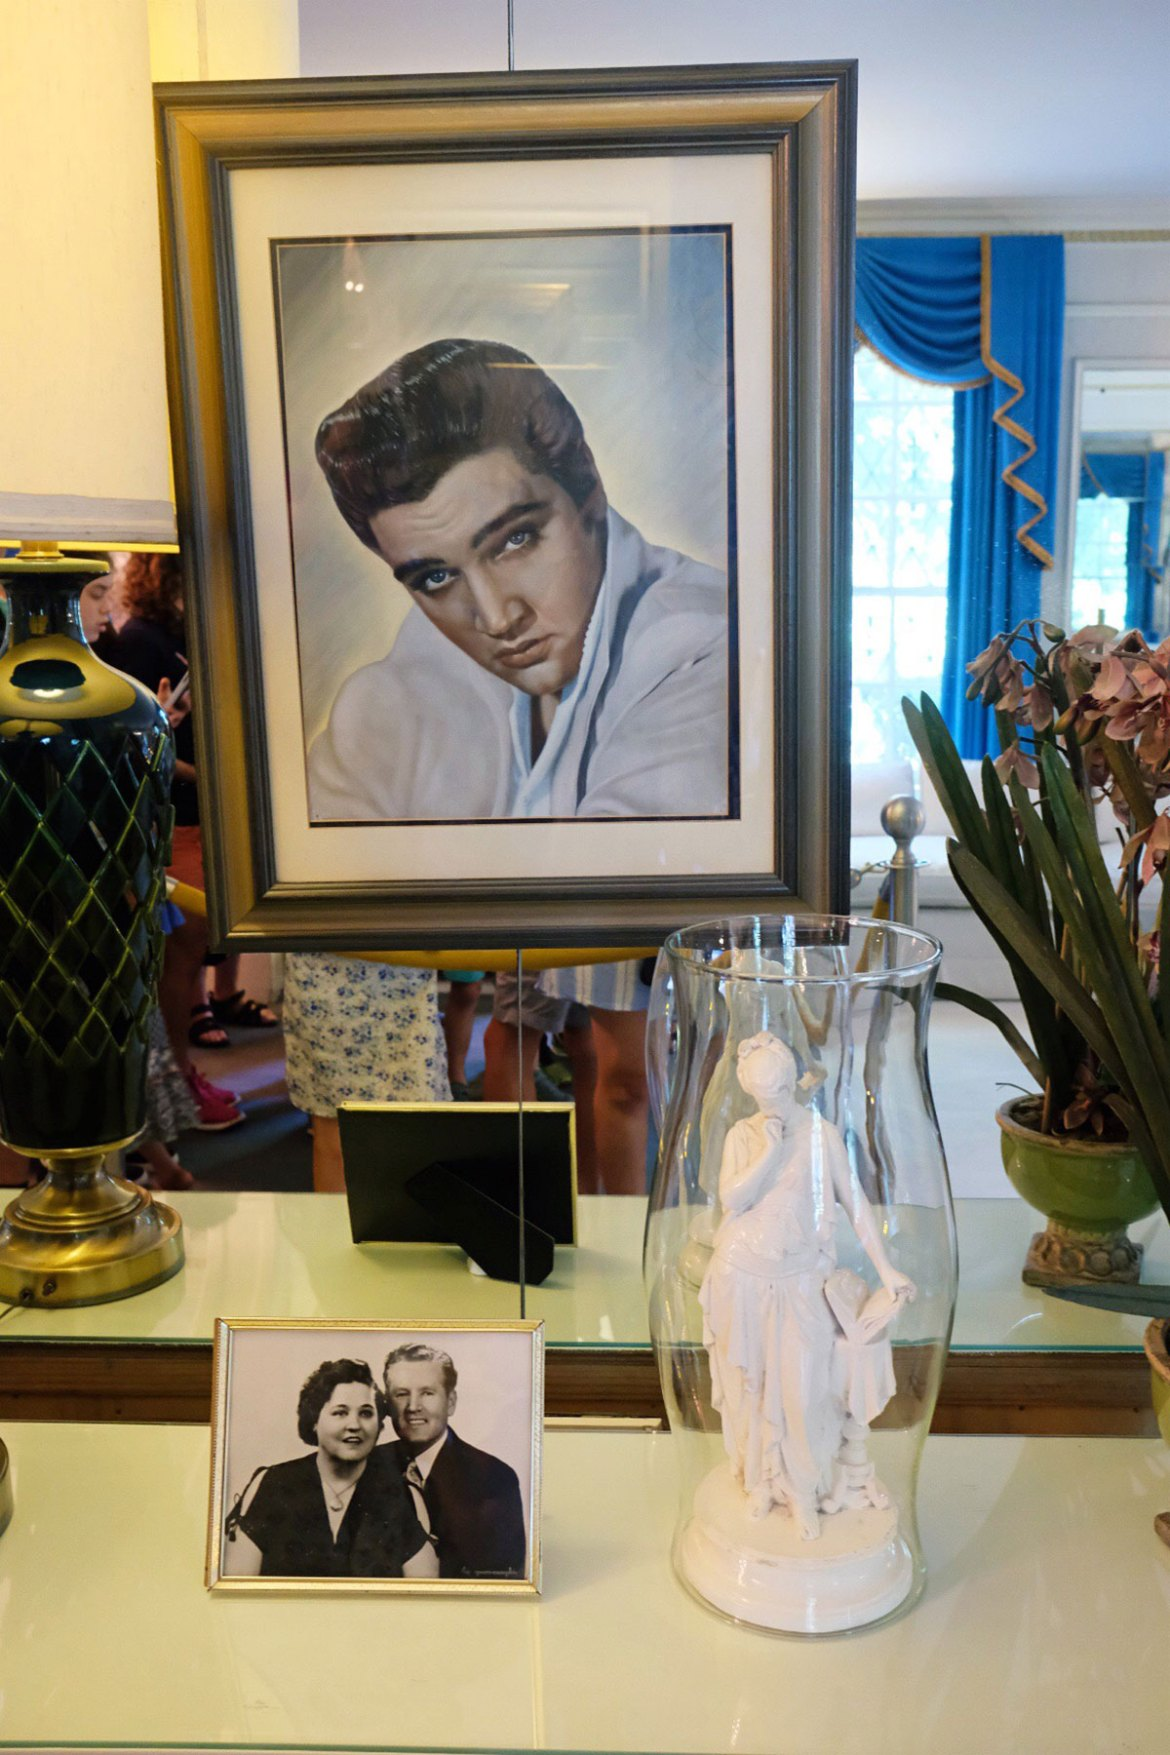 A portrait of Elvis Presley at Graceland